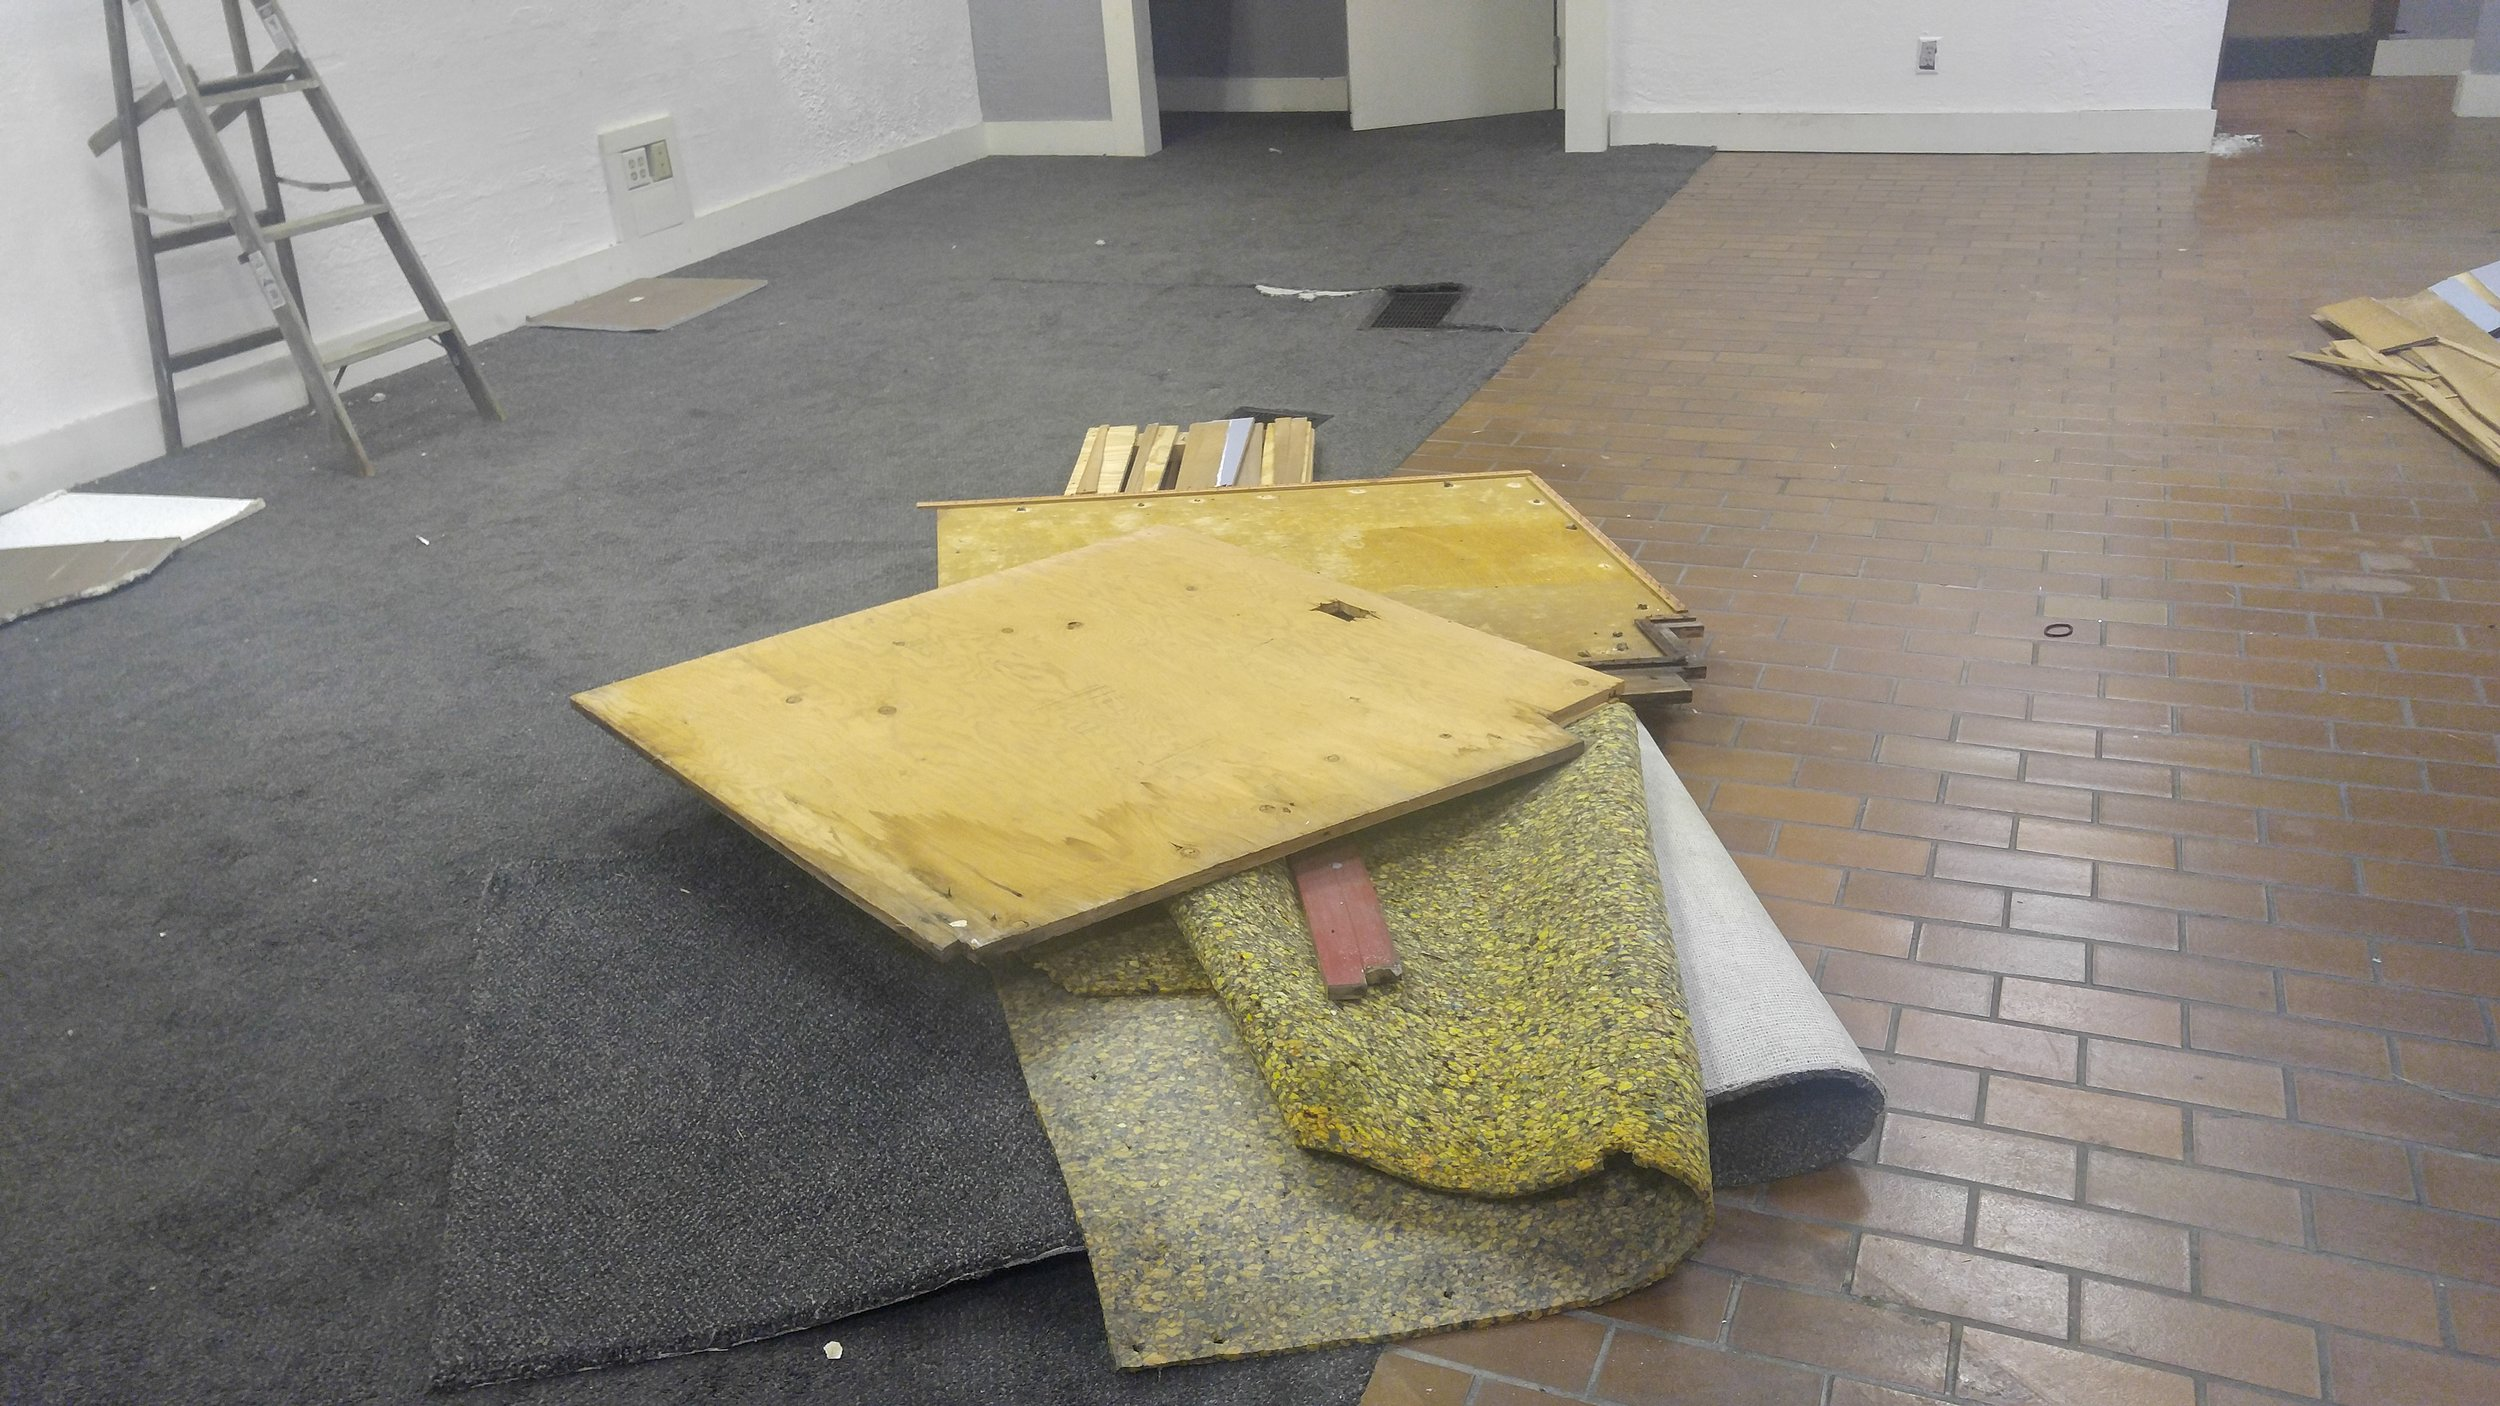 Removal of a window display platform. Seating will be built in its place.